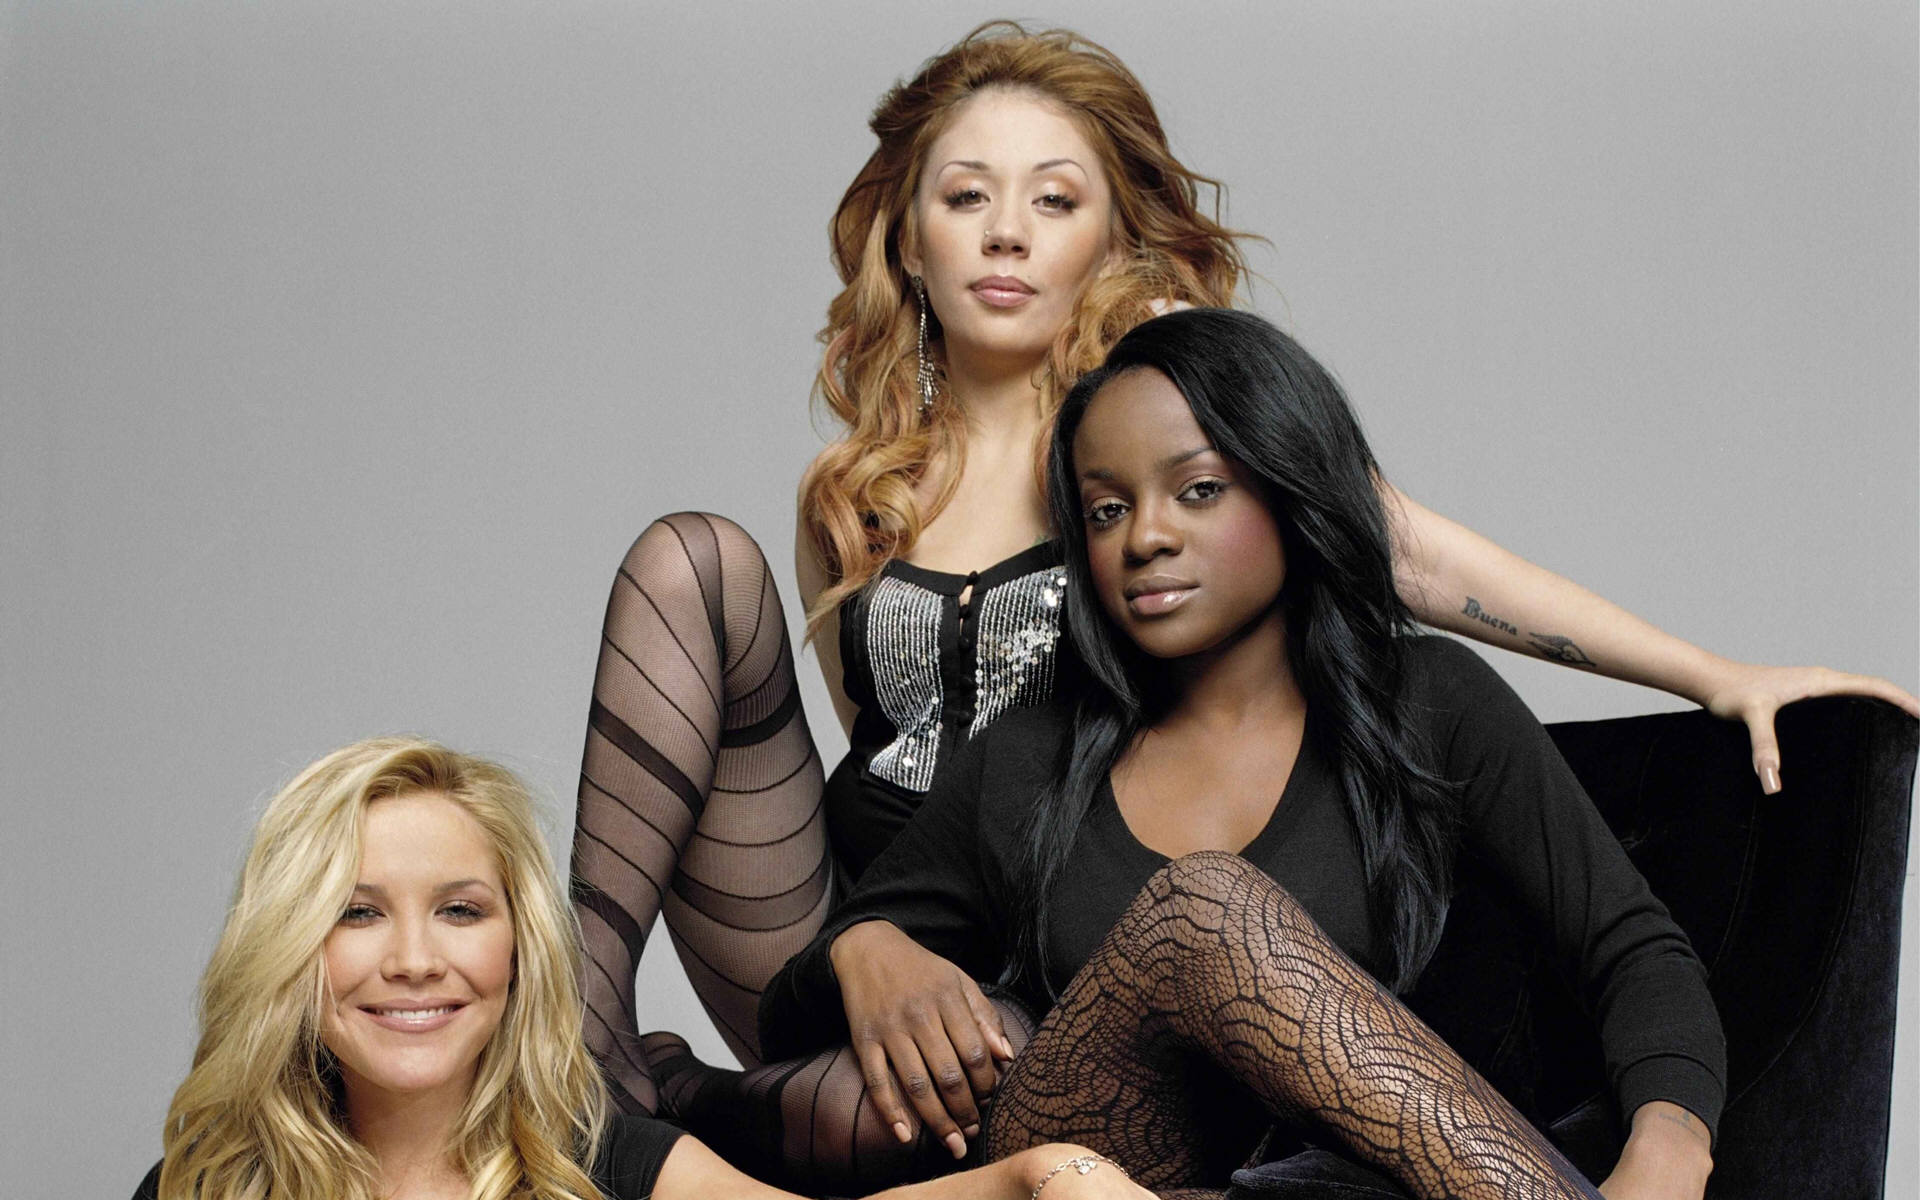 Discussion on this topic: Sugababes Amelle: Keisha nearly ruined me, sugababes-amelle-keisha-nearly-ruined-me/